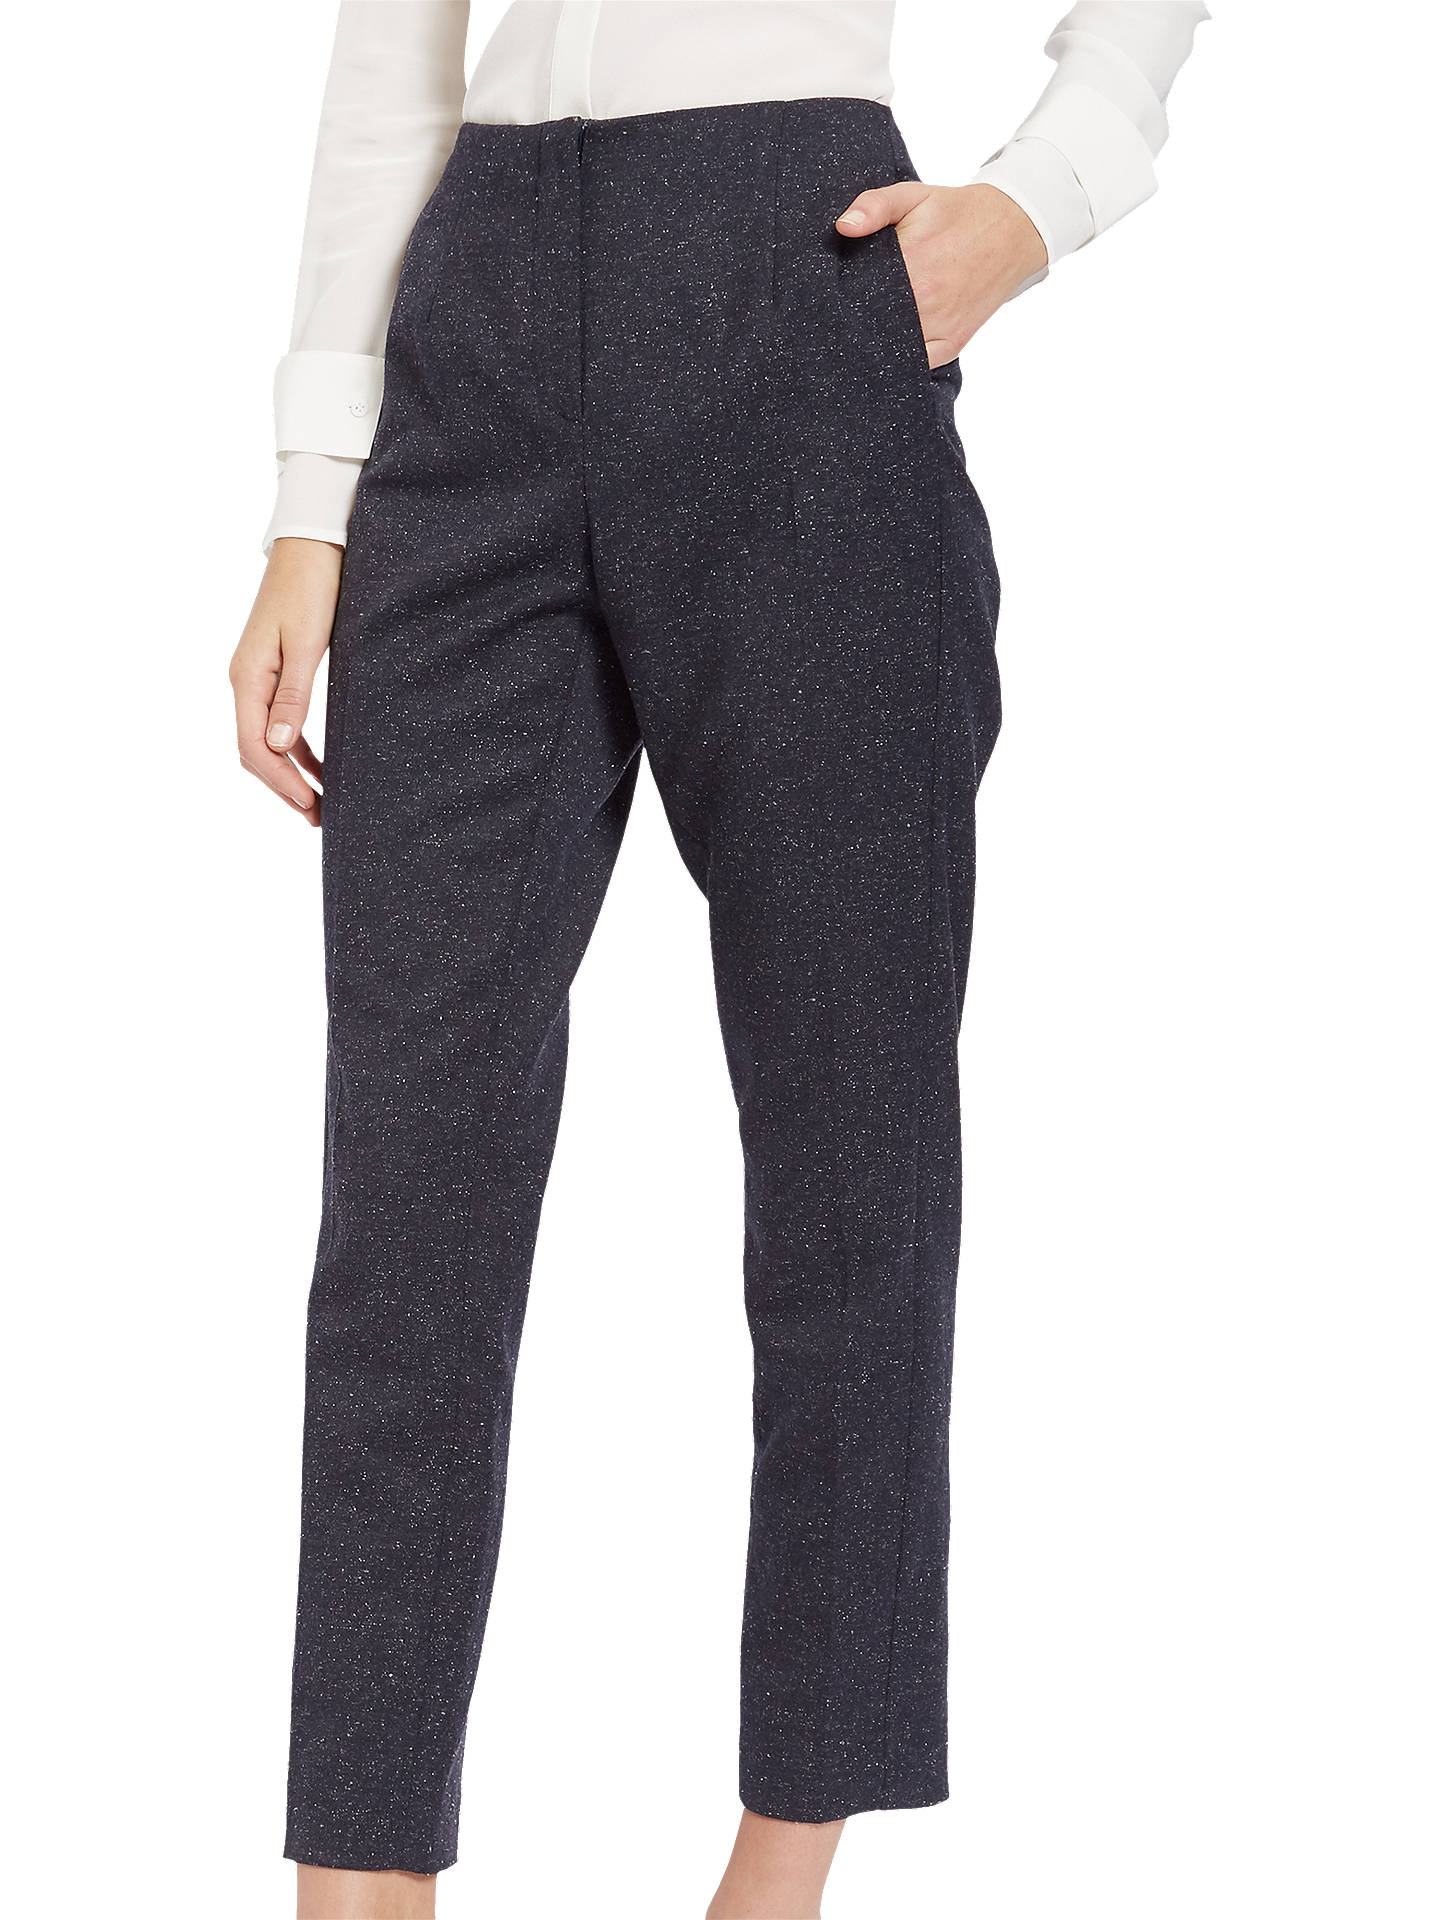 BuyJaeger Donegal Cigarette Trousers, Navy/Ivory, 6 Online at johnlewis.com